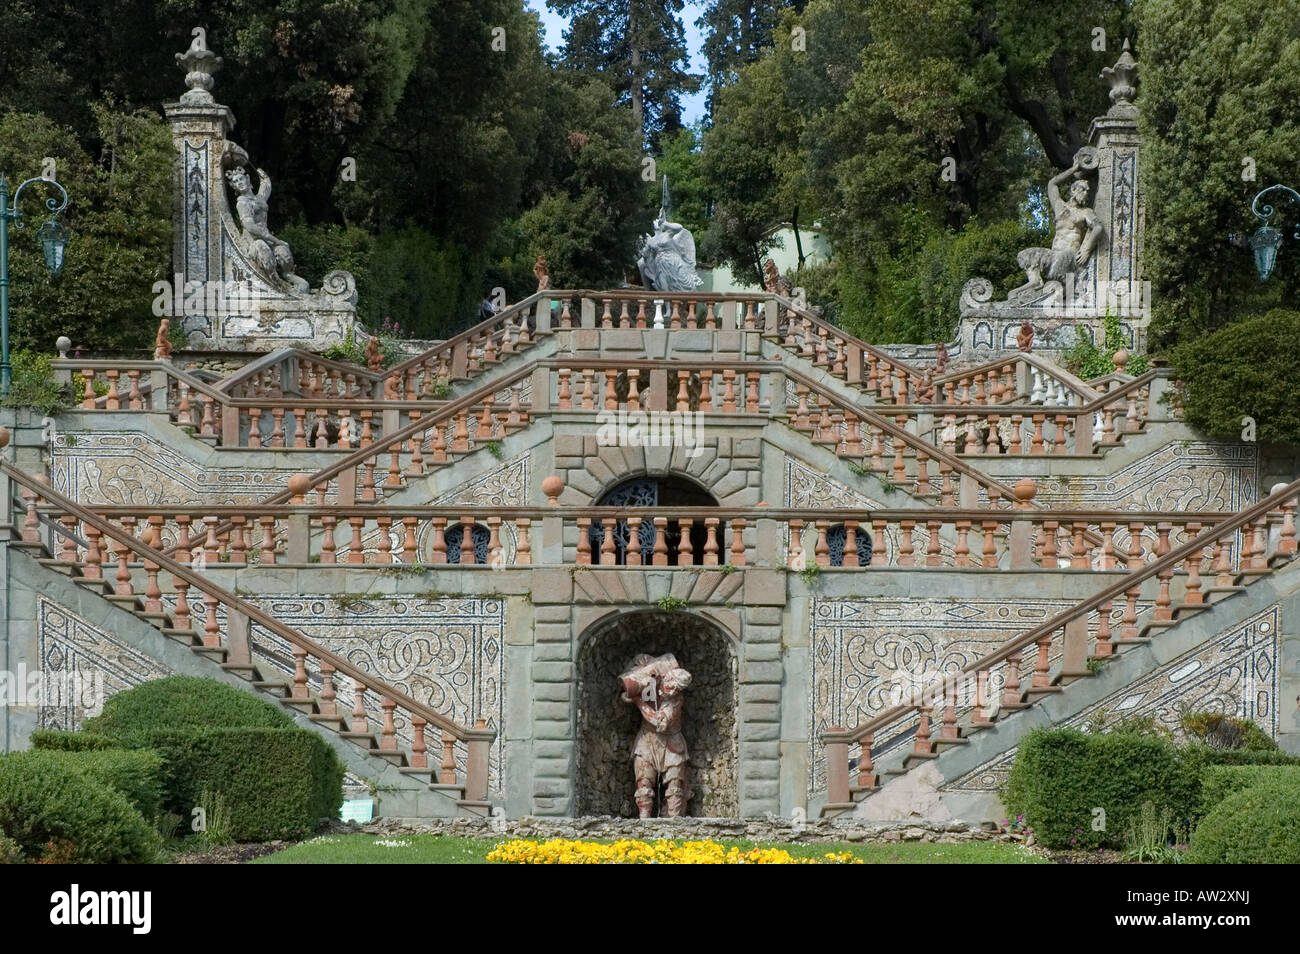 Villa Garzoni, with its attached coeval monumental garden - Stock Image